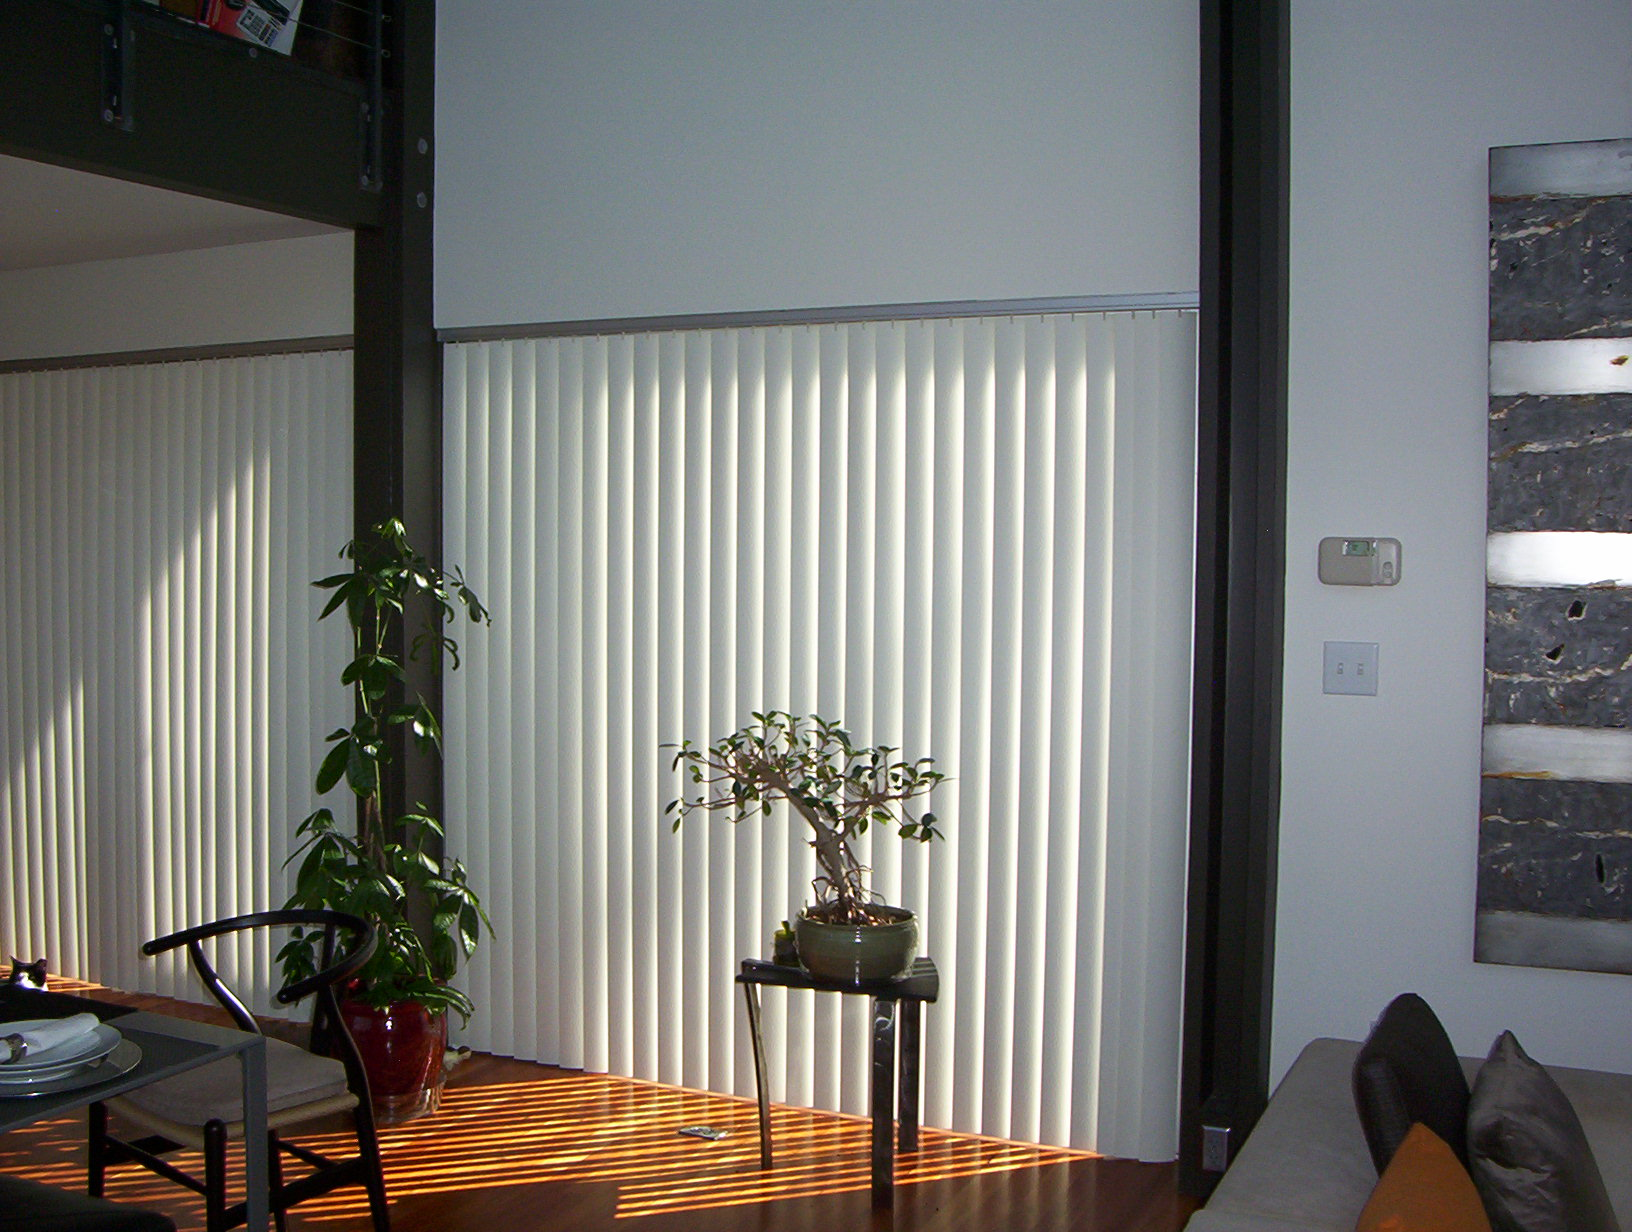 blinds wood review ireland faux myhomedesign win kathy blind